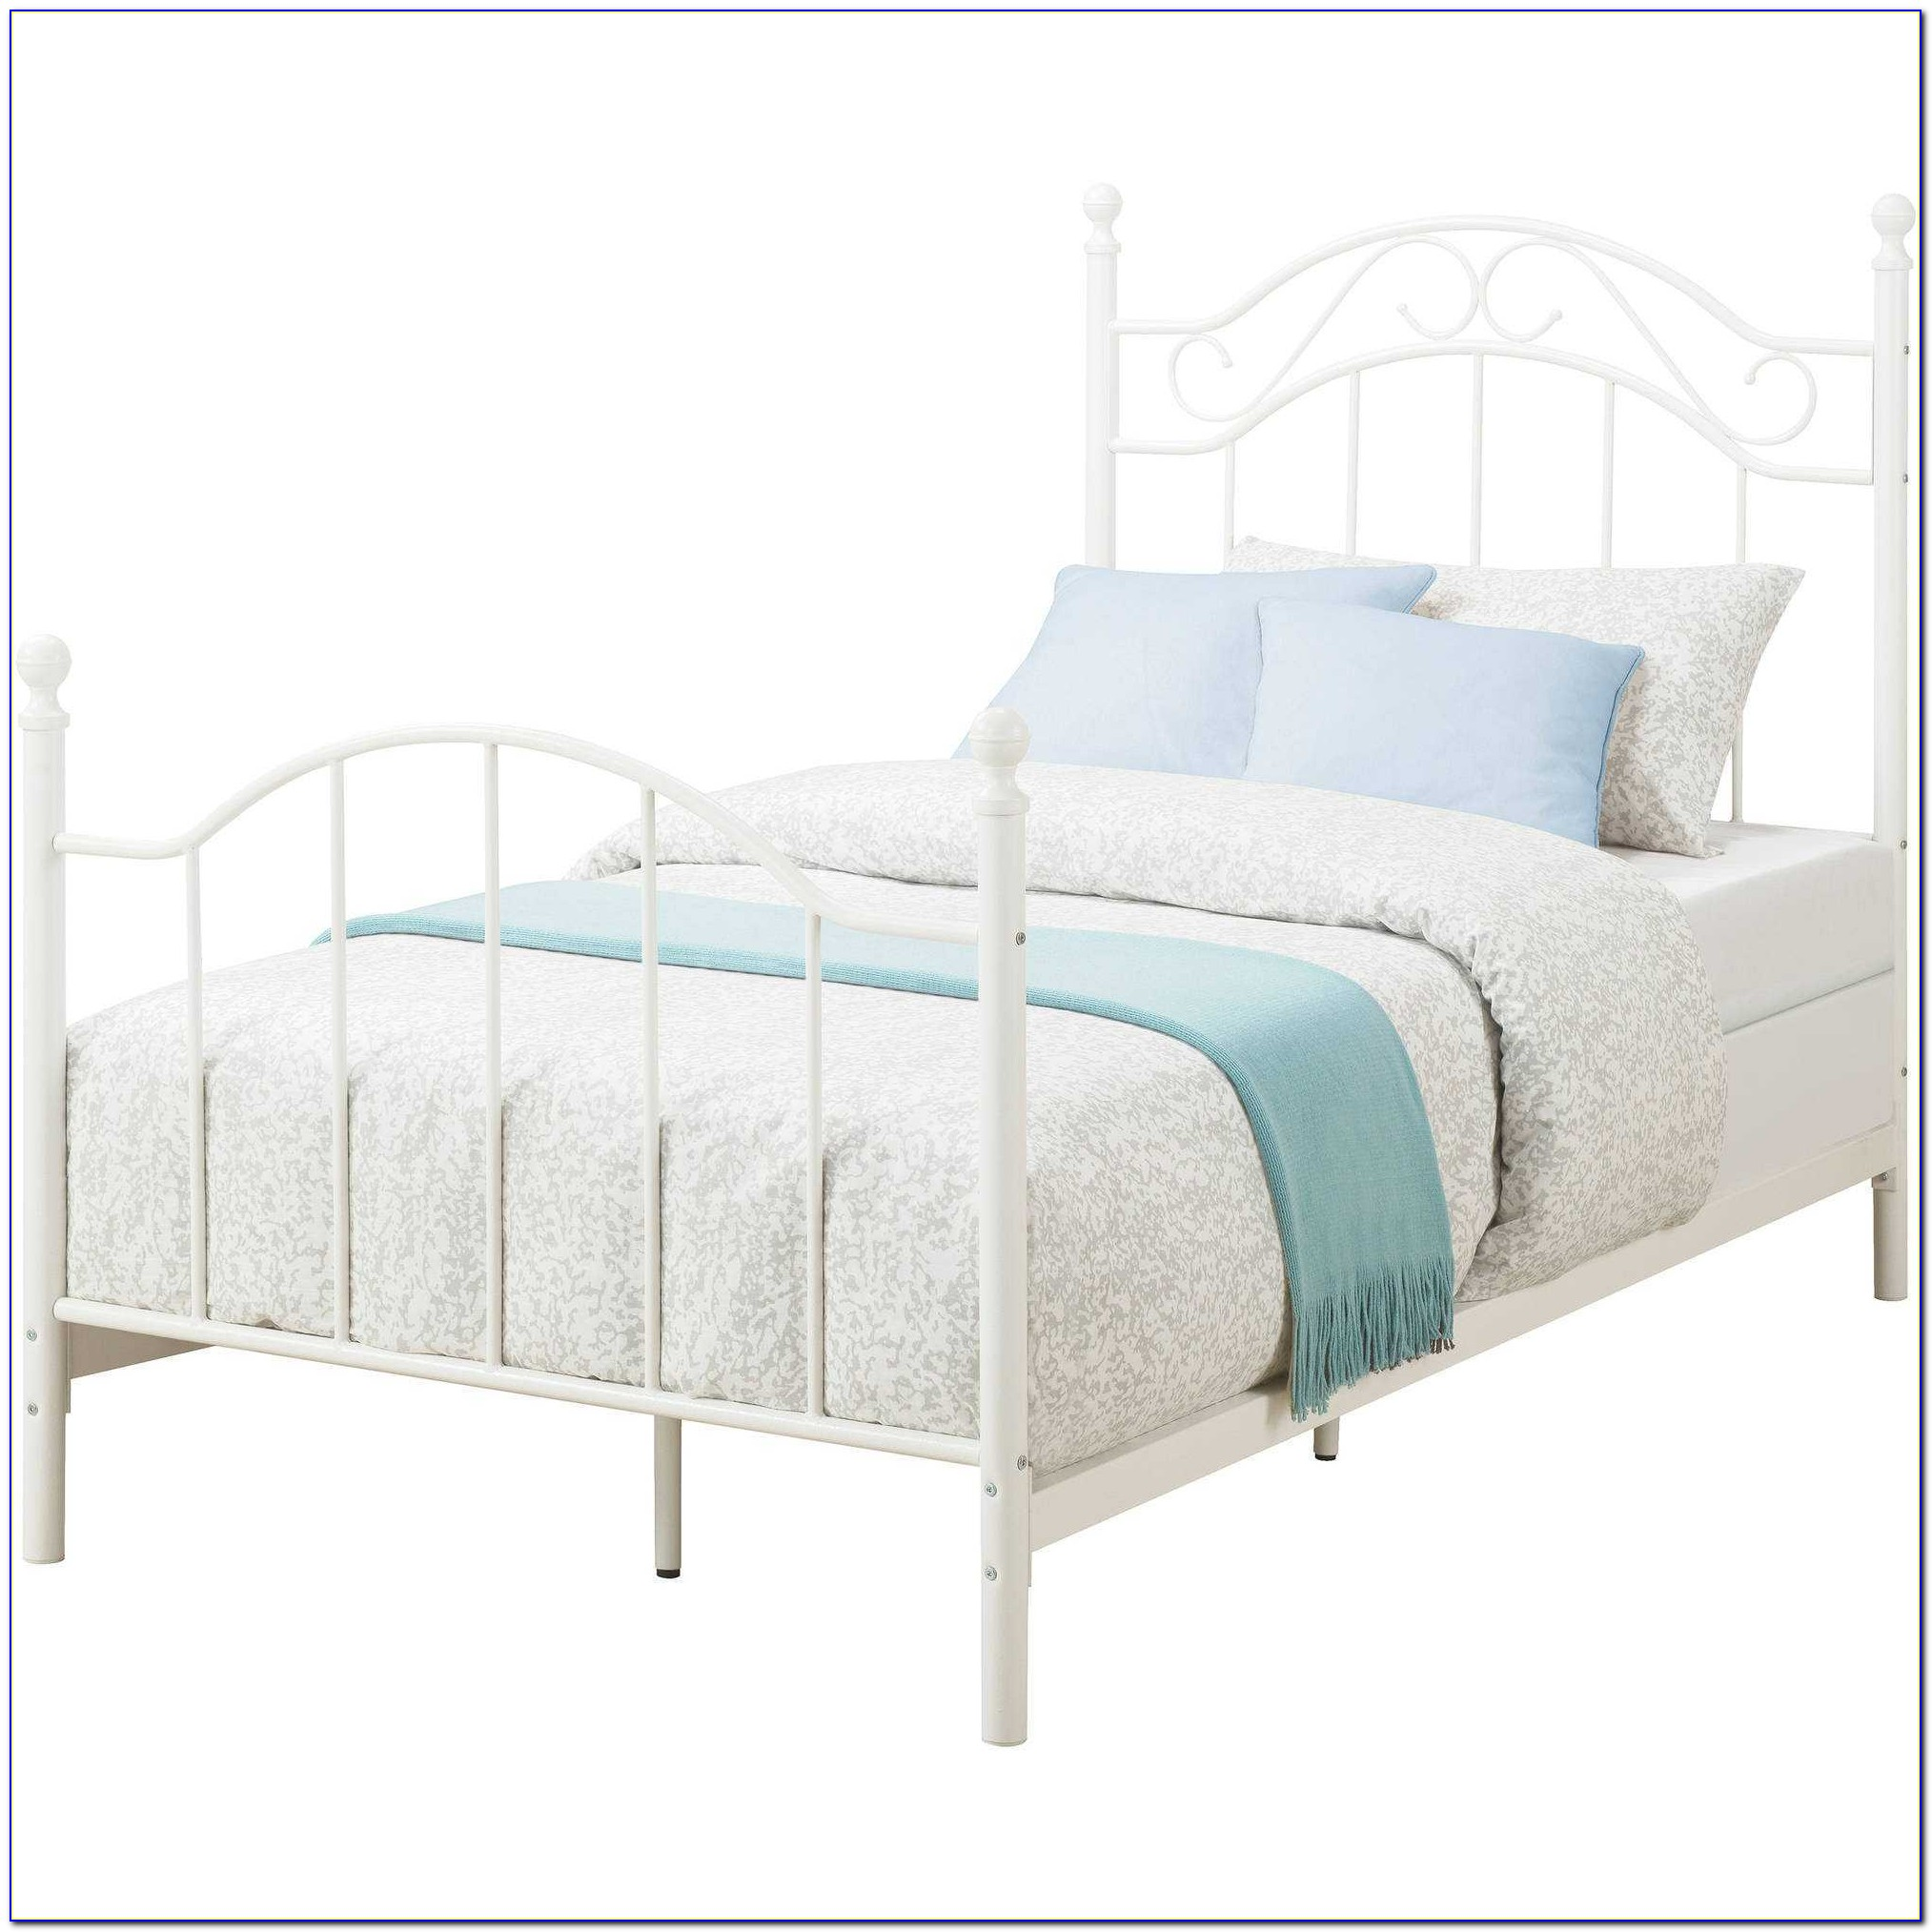 Twin Metal Bed Frame For Headboard And Footboard